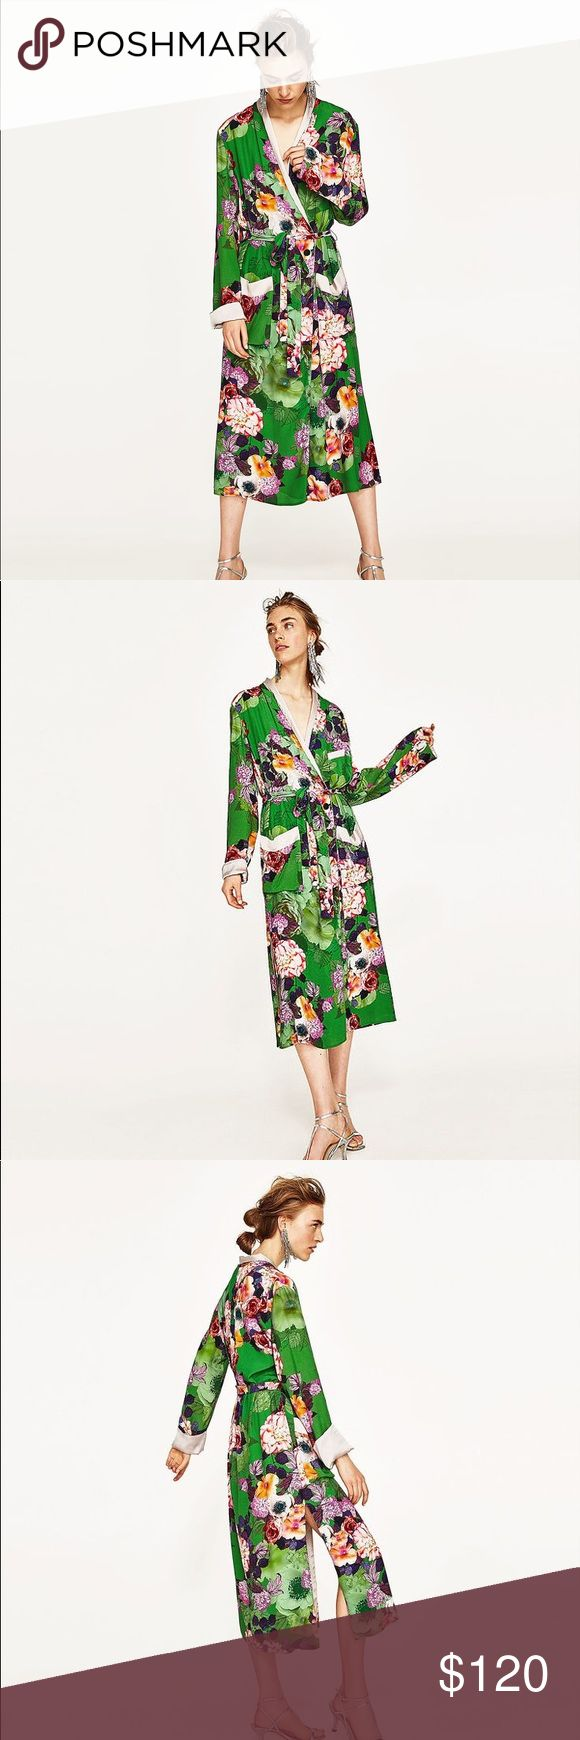 NWT Zara Green Long Floral Kimono Rose Dress ZARA SS17 2017 SOLD OUT EVERYWHERE REF. 2602/791 LONG, FLORAL PRINT KIMONO WITH LONG SLEEVES, POCKET DETAIL ON THE CHEST, PATCH POCKETS AND MATCHING BELT. KIMONO JS MISSING ONE BUTTON ON THE INSIDE (DOES NOT AFFECT CLOSING) AND ONE OF THE BELTLOOPS IS LOOSE. OTHERWISE IN PERFECT CONDITION Zara Jackets & Coats